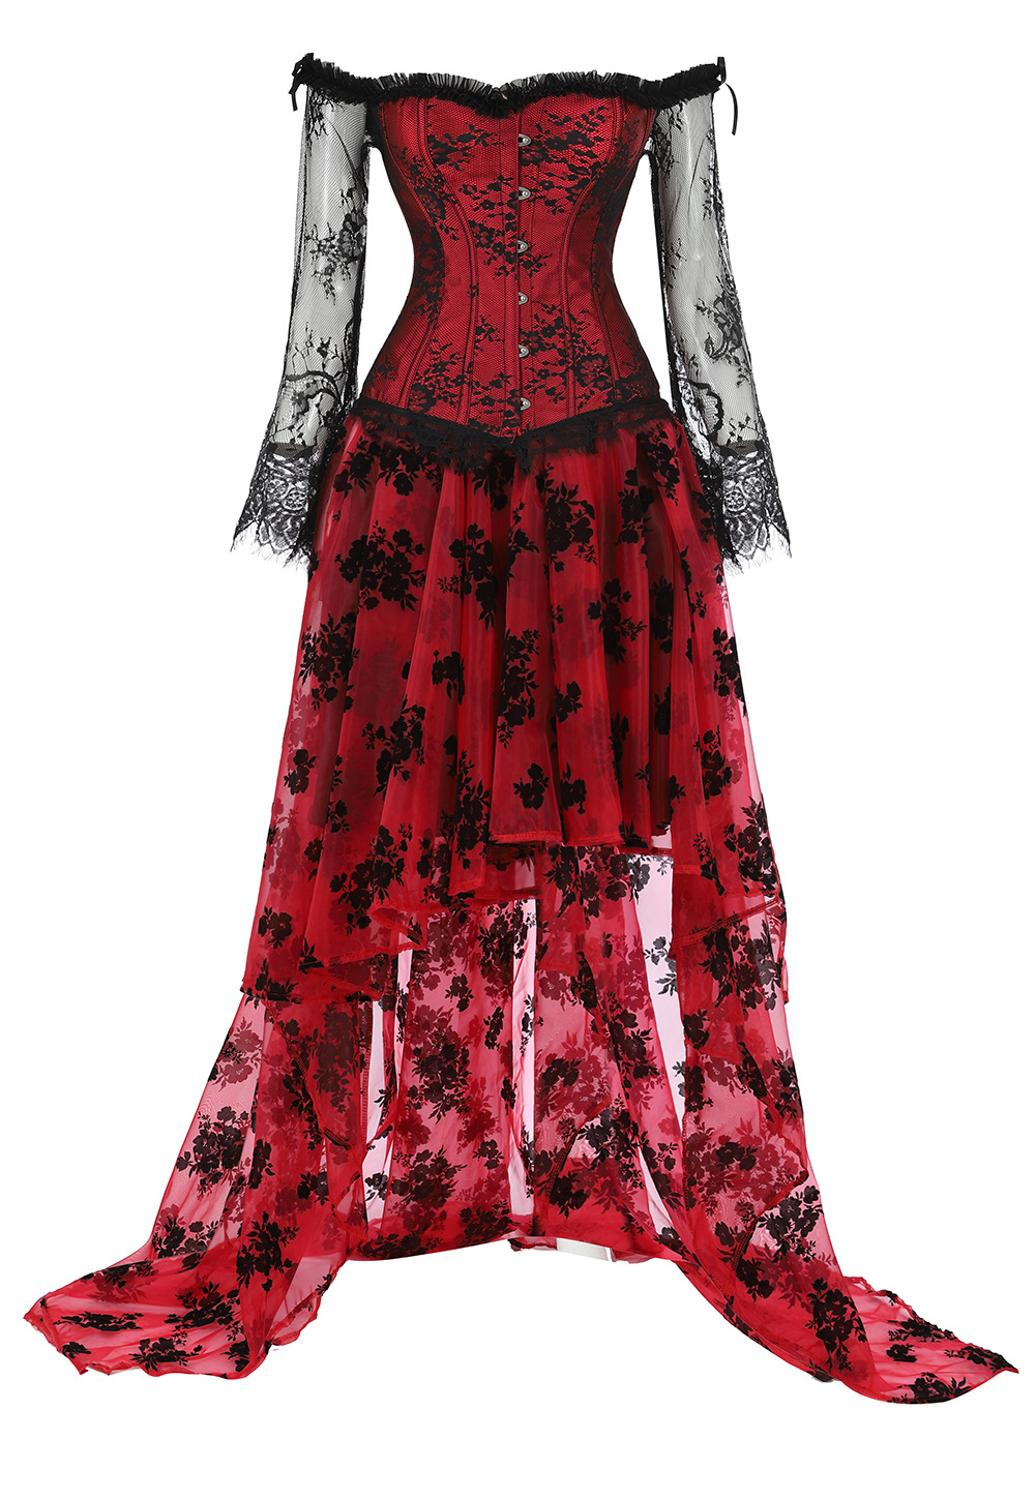 Vintage Steampunk   Corset   Dress Women Victorian Retro Gothic   Corset   Burlesque Lace   Corset   And   Bustiers   Long irregular Skirt Set